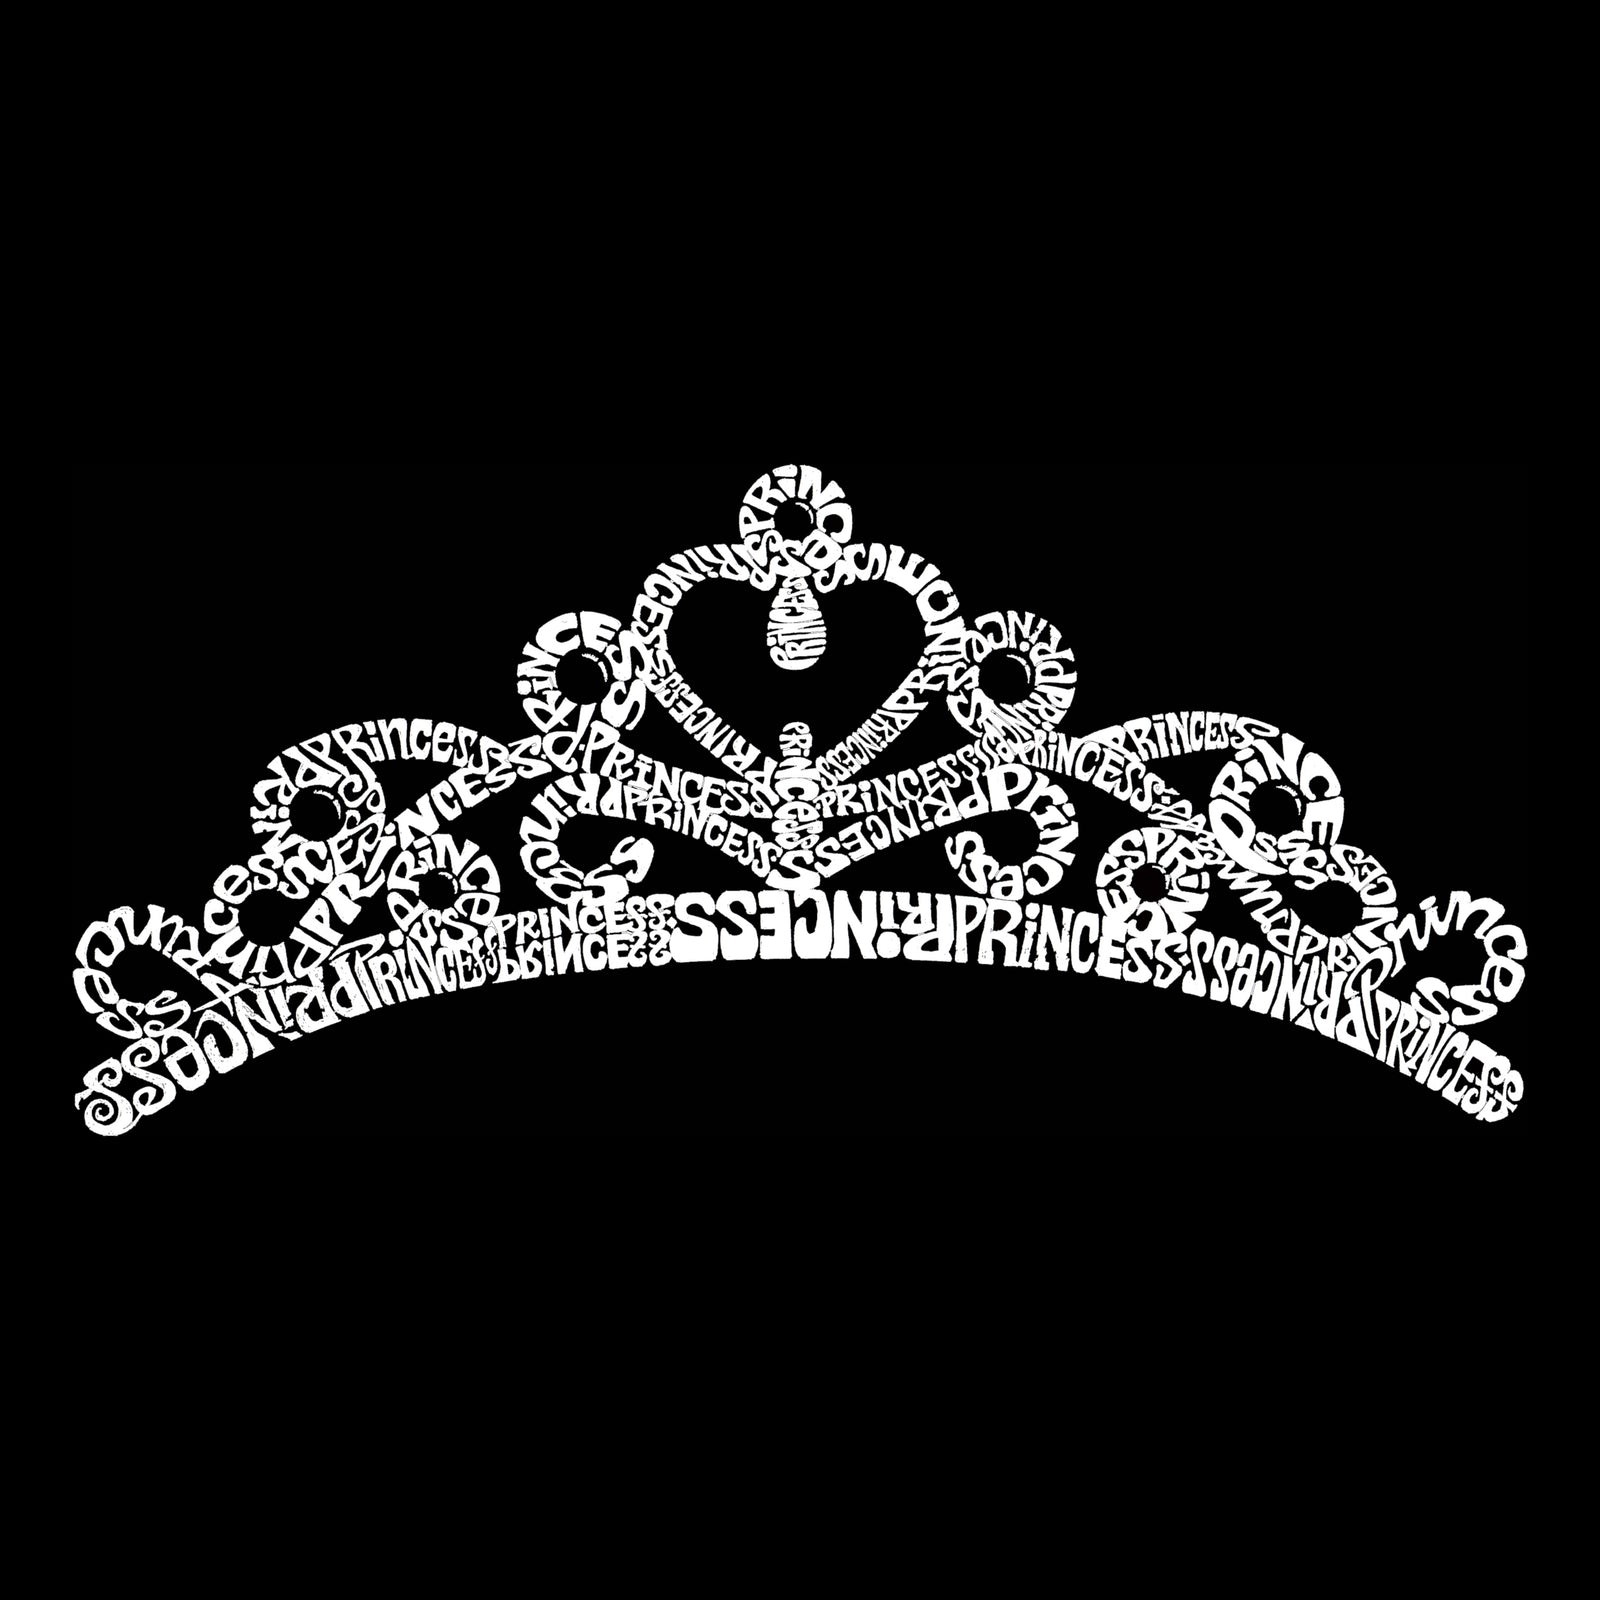 Men's Sleeveless T-shirt - Princess Tiara